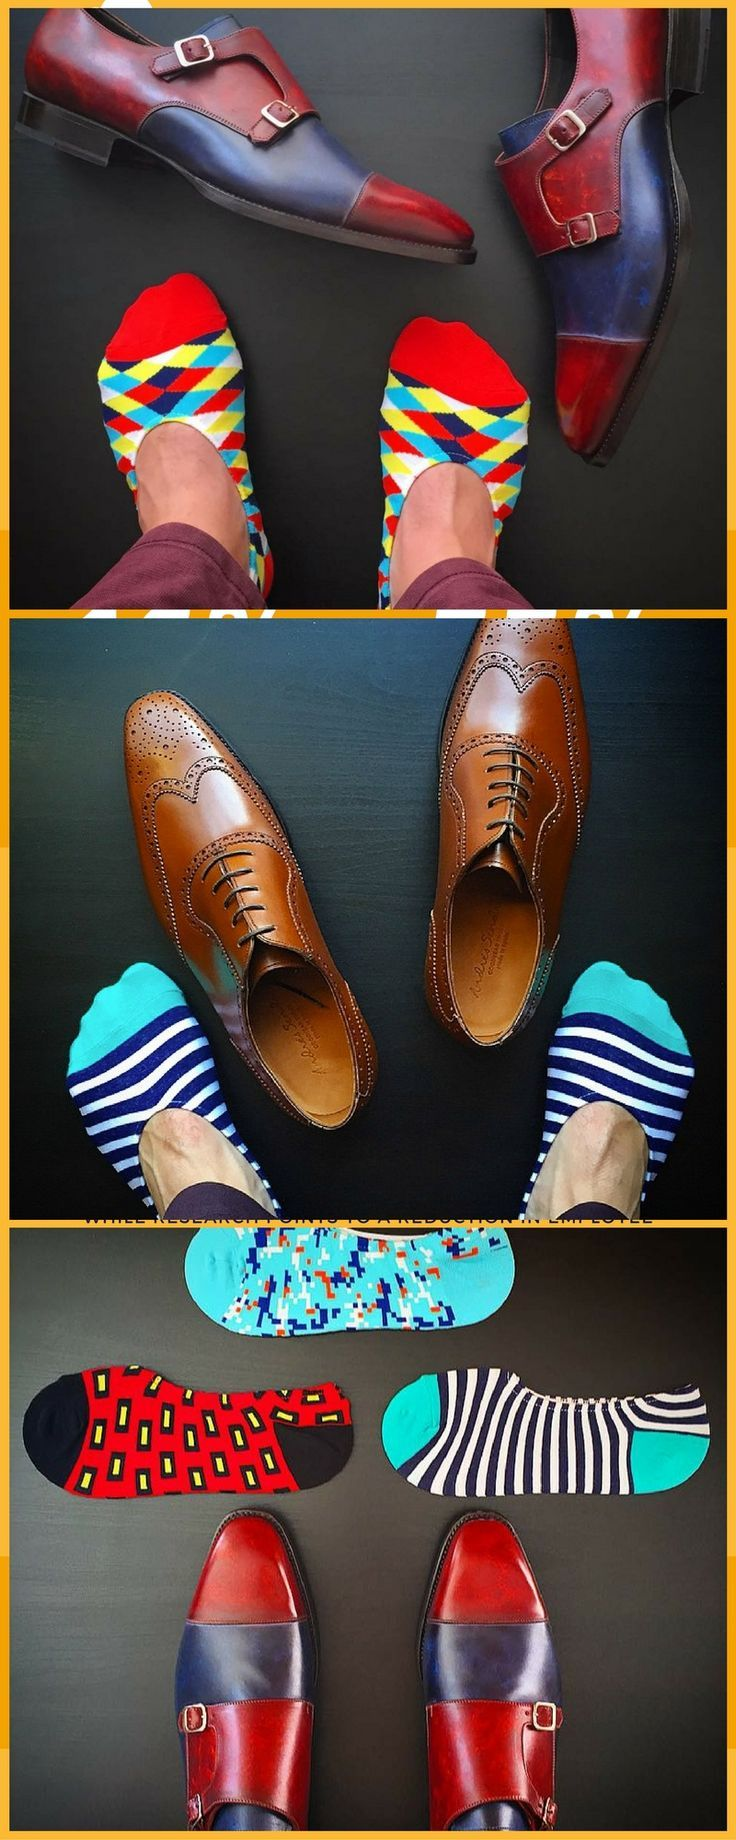 When they think you're not wearing any socks... But you know you're rocking a dope pair of Soxy no shows - mens shoes com, online shopping shoes for mens, mens casual dress shoes